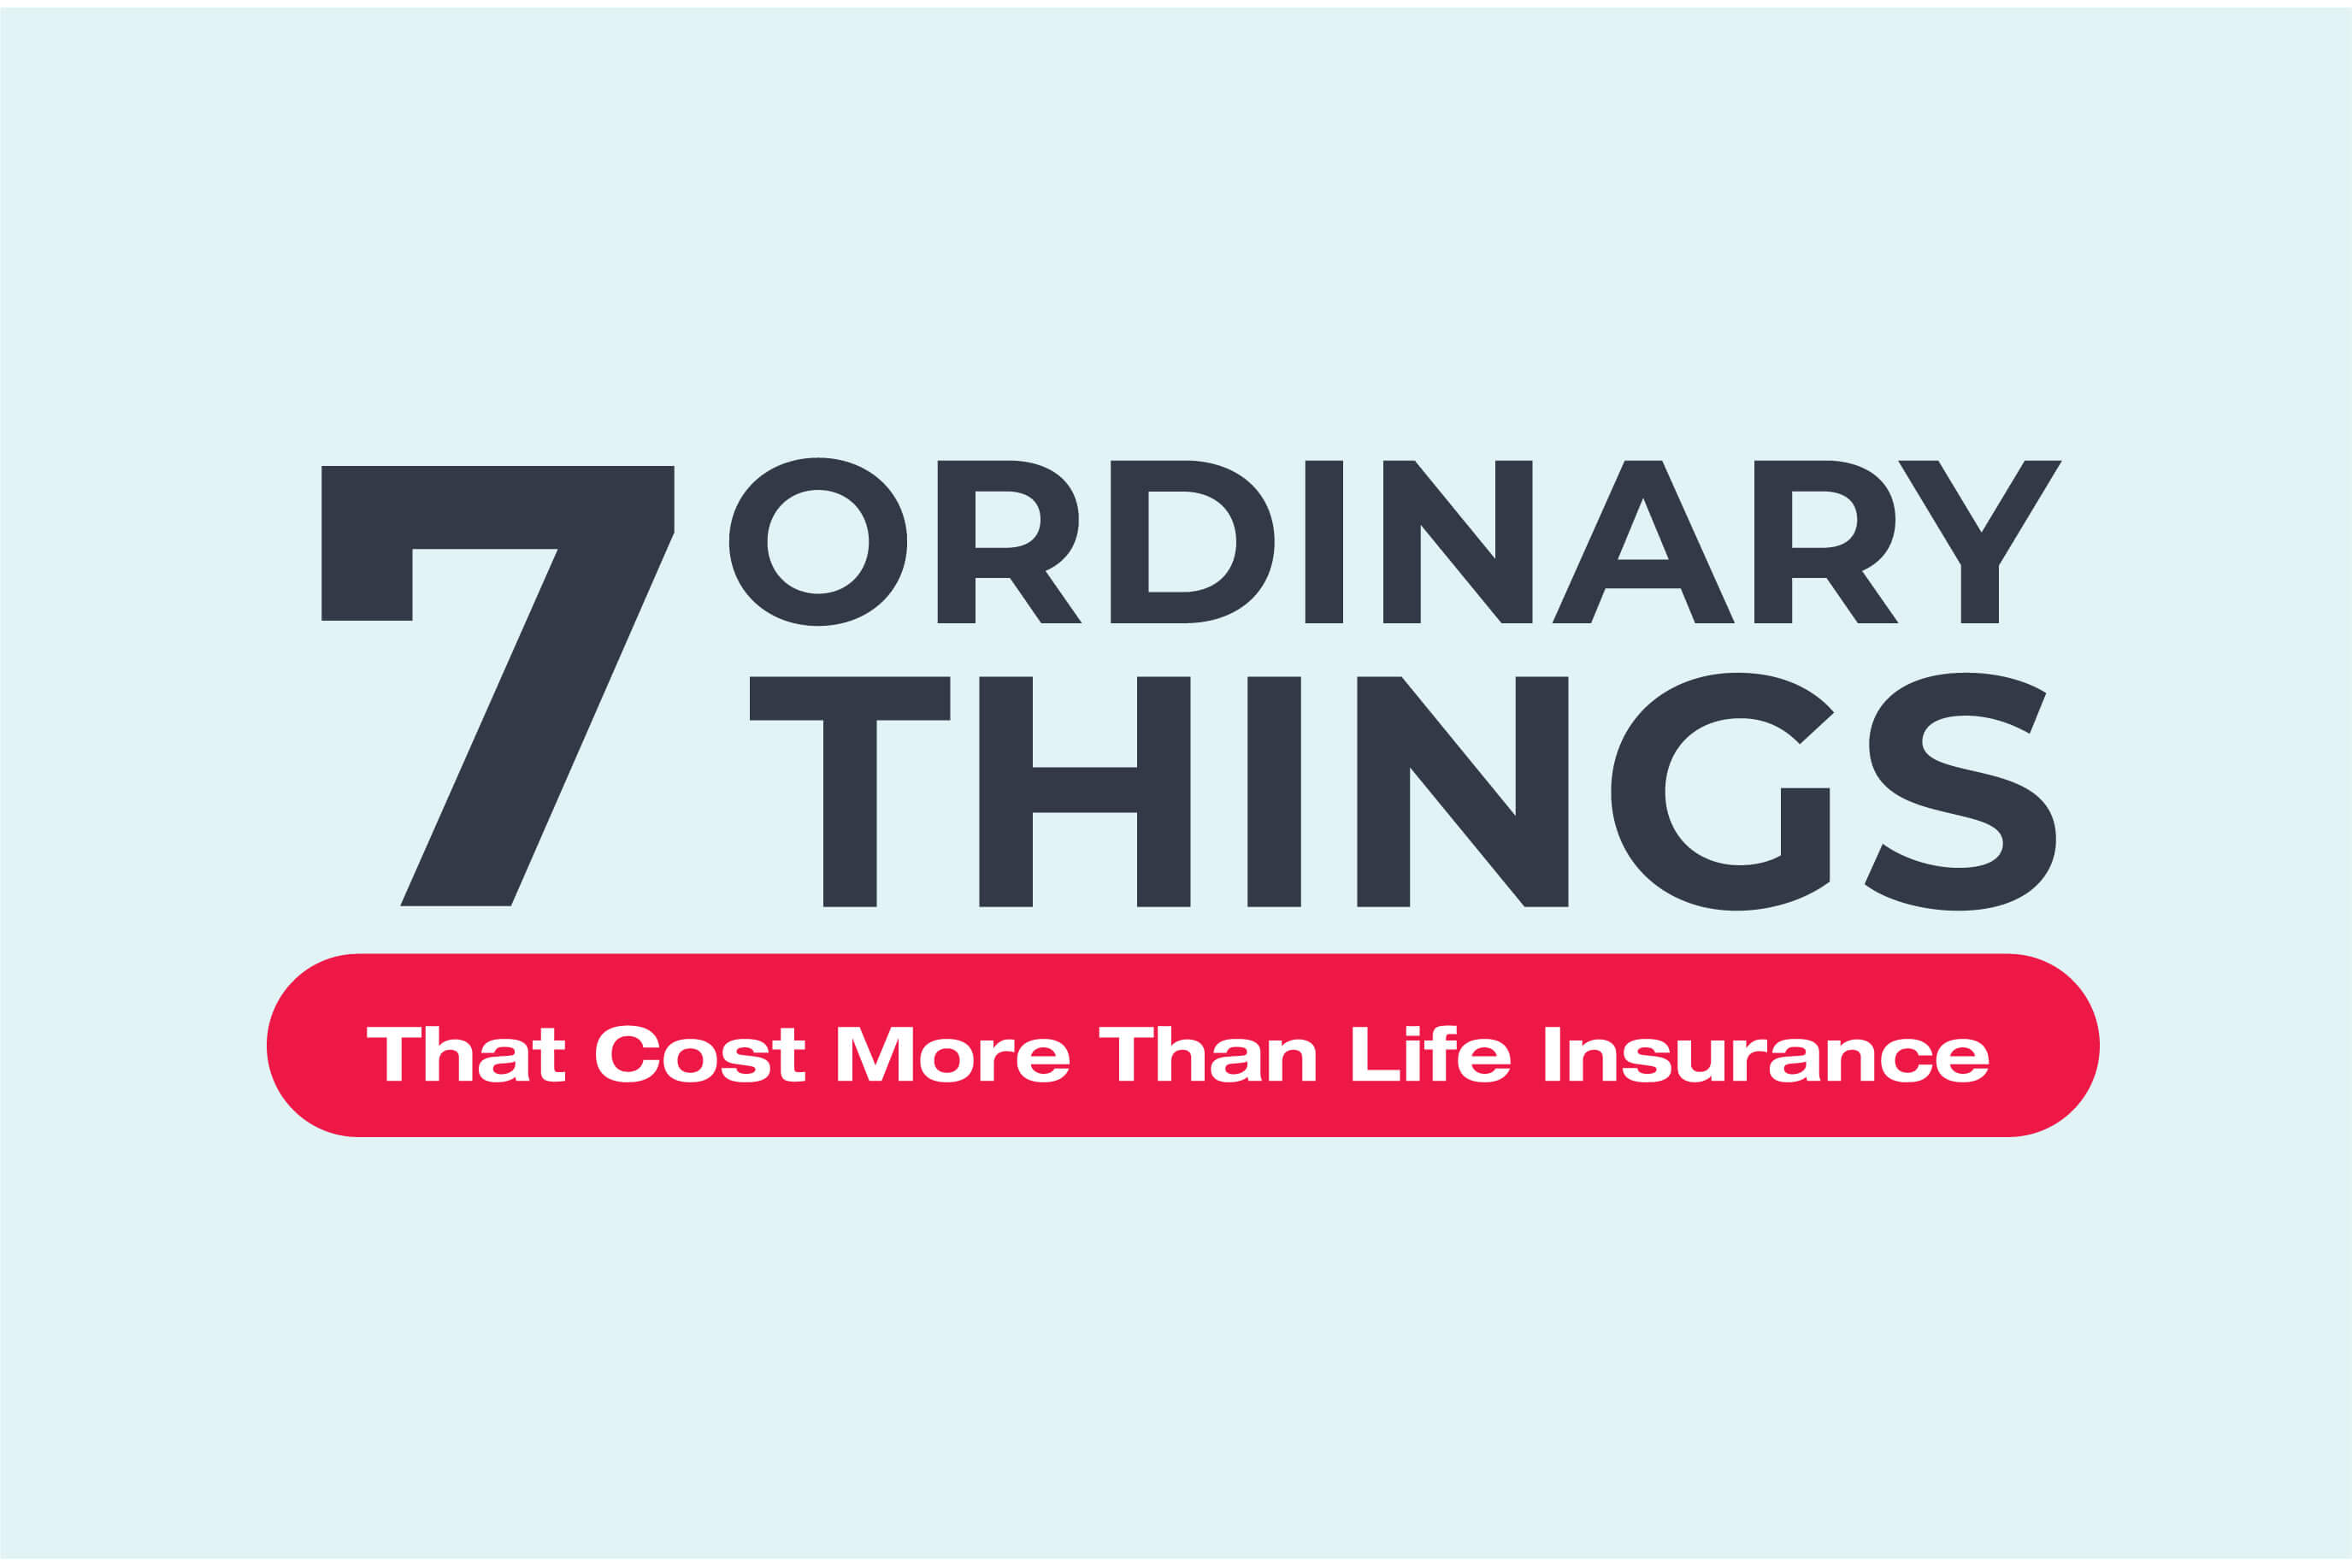 7 ordinary things that cost more than life insurance, blog feature image